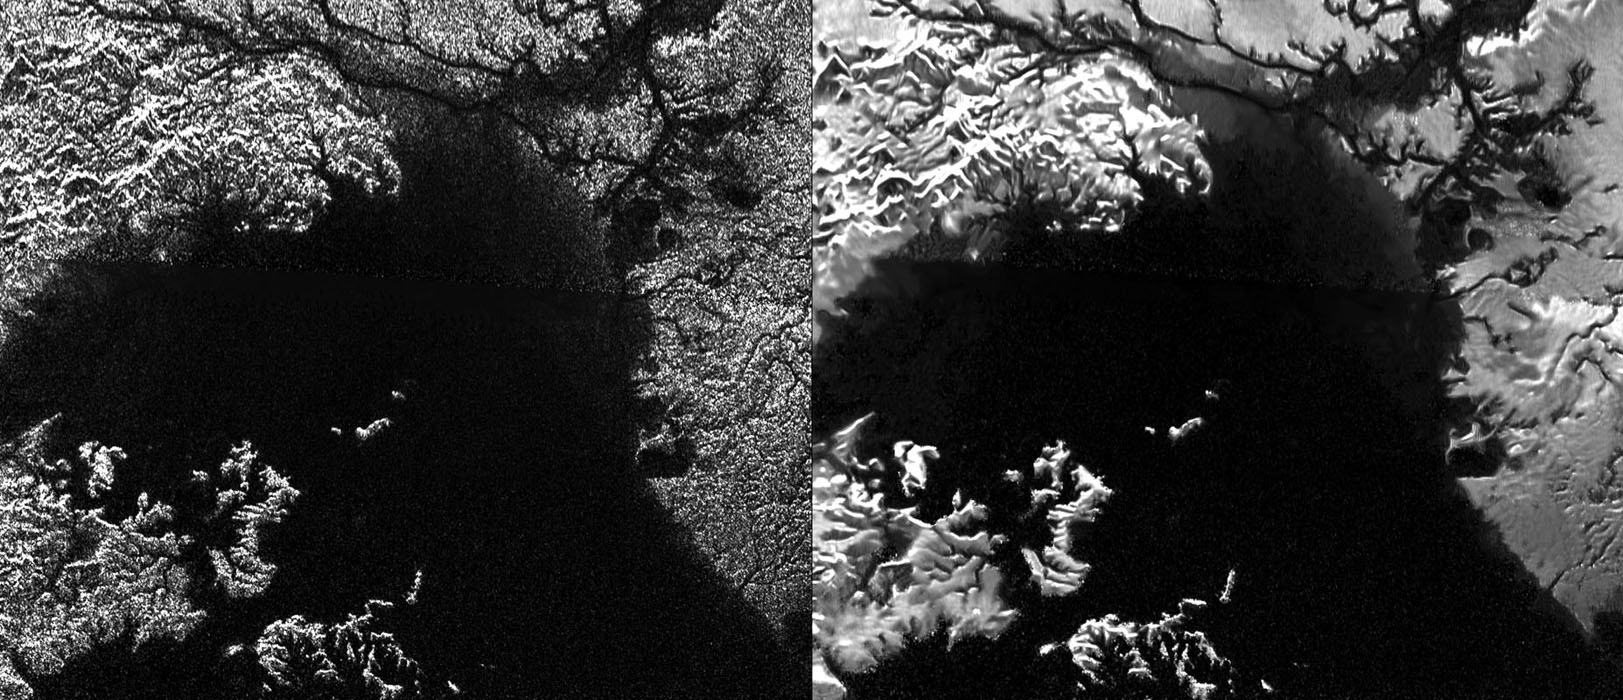 These views from NASA's Cassini Synthetic Aperture Radar (SAR) present a side-by-side comparisons of a traditional view and one made using a new technique called despeckling for handling electronic noise that results in clearer views of Titan's surface.